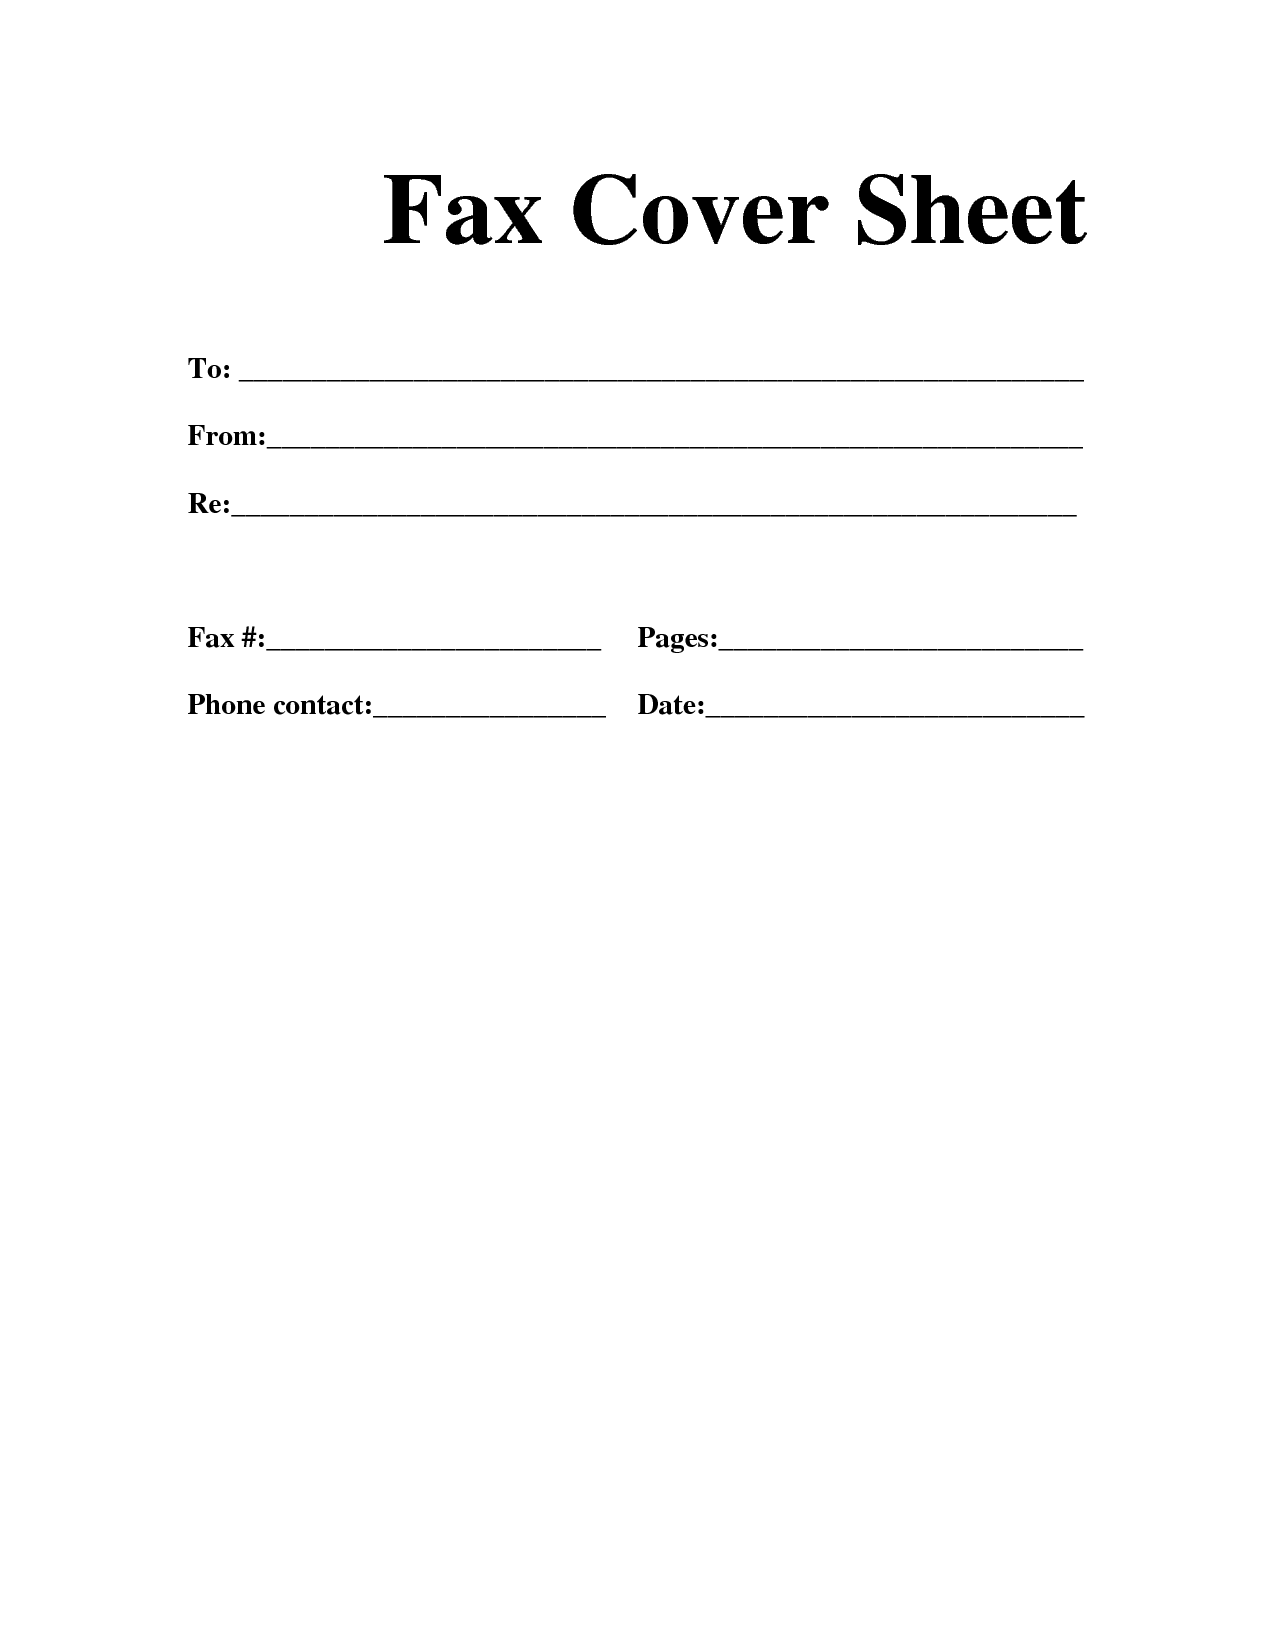 Free Fax Cover Sheet Doc